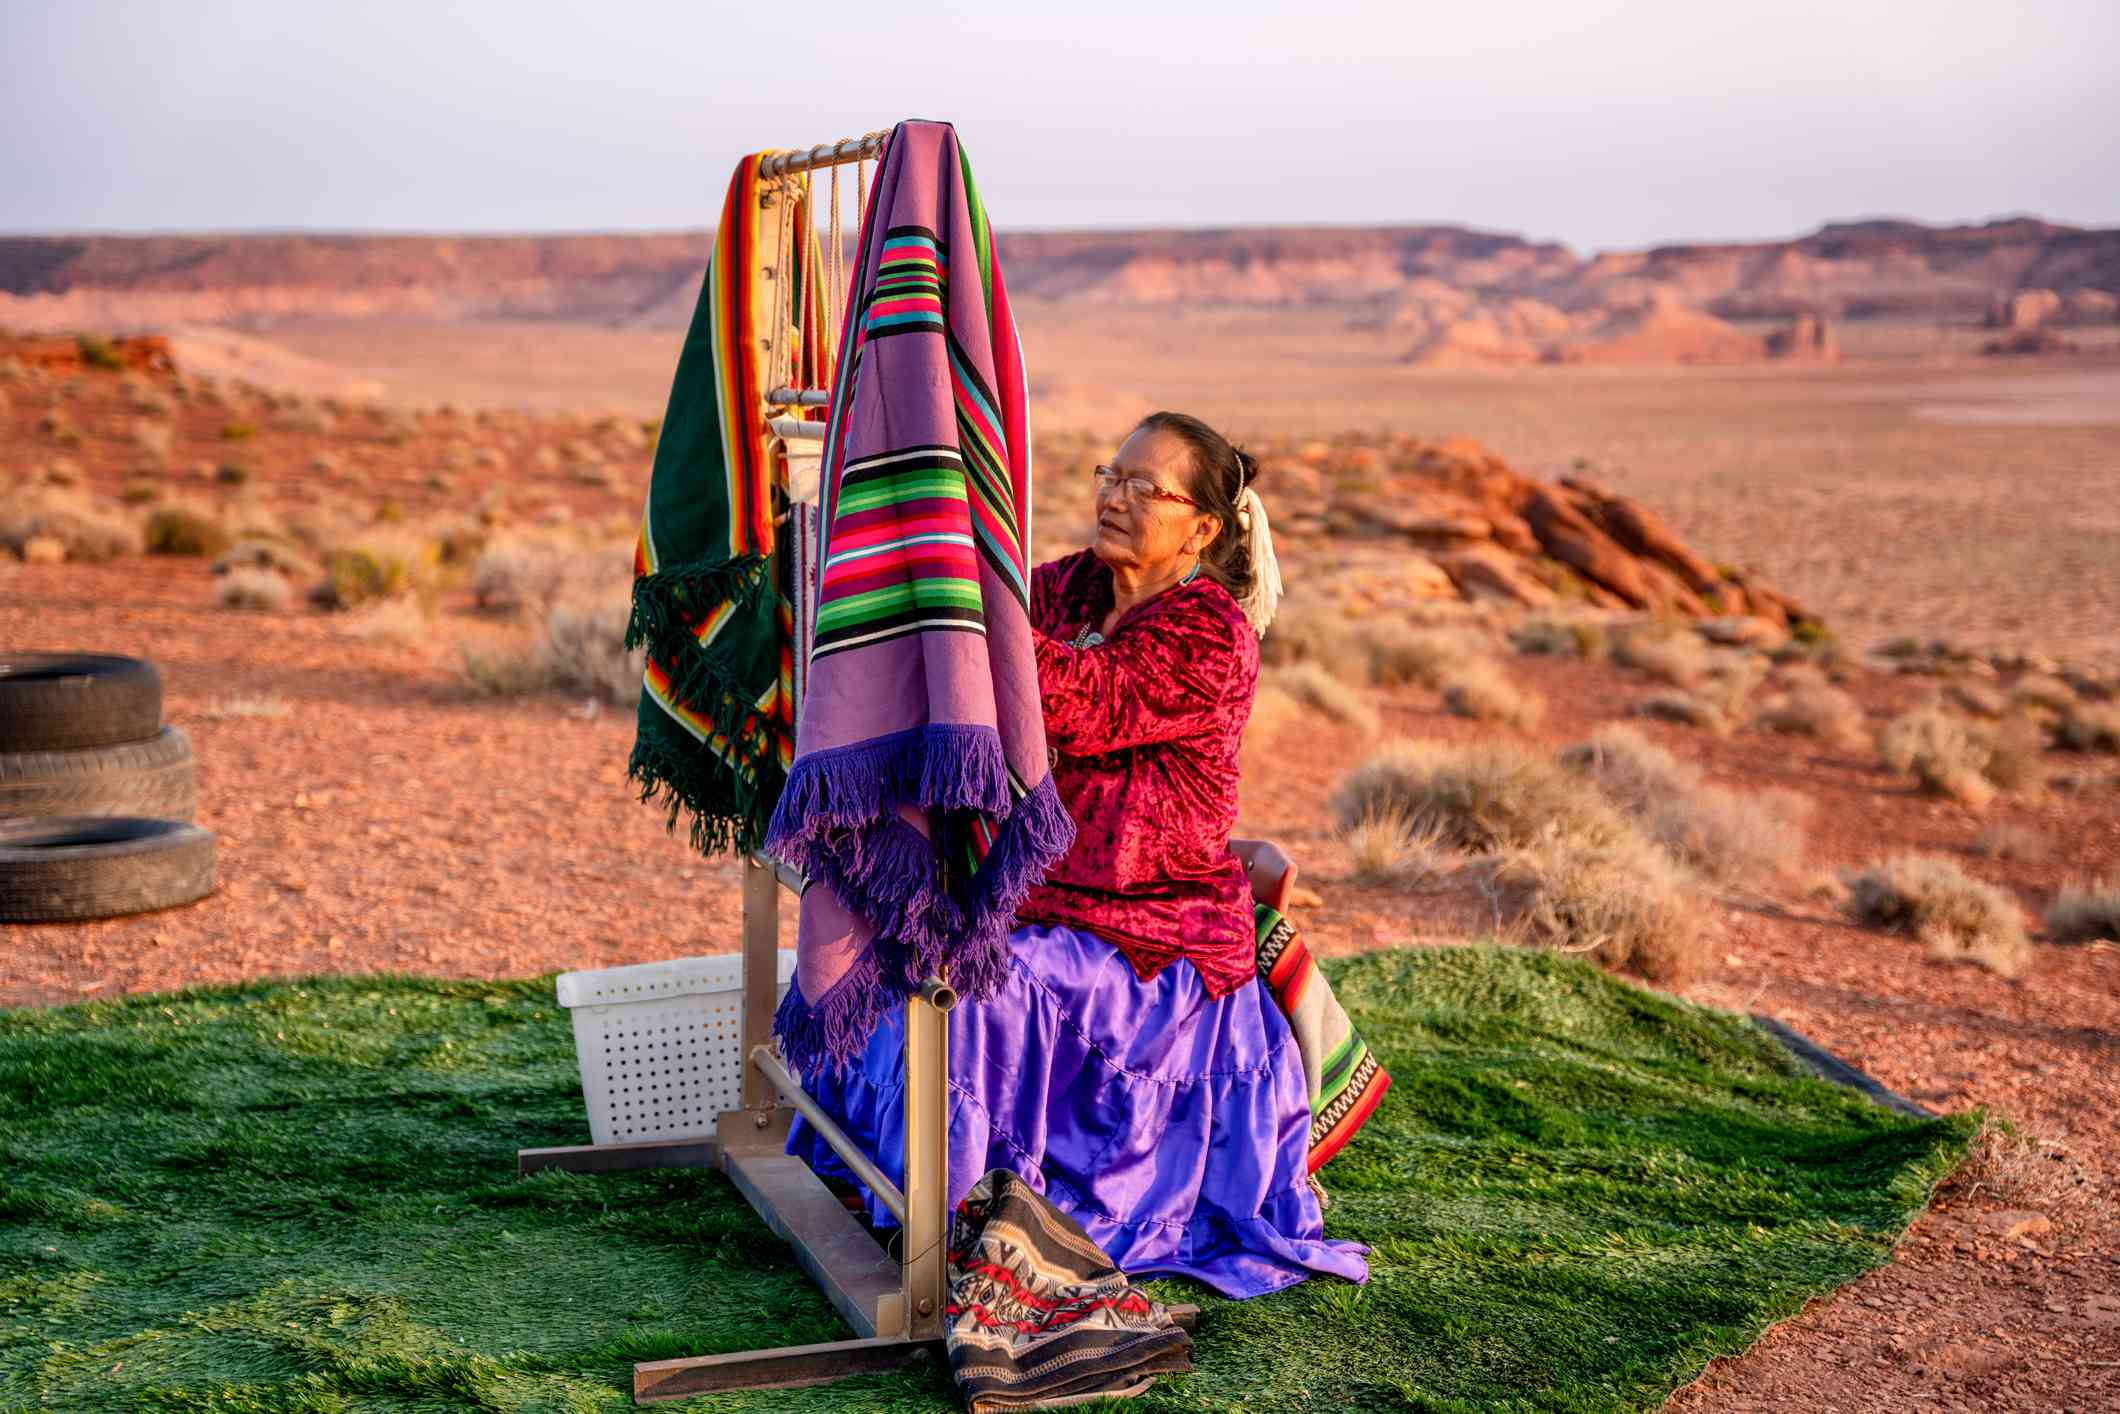 Elderly Navajo Woman Weaving a Traditional Blanket or Rug on a Loom in the Arizona Desert at Dusk